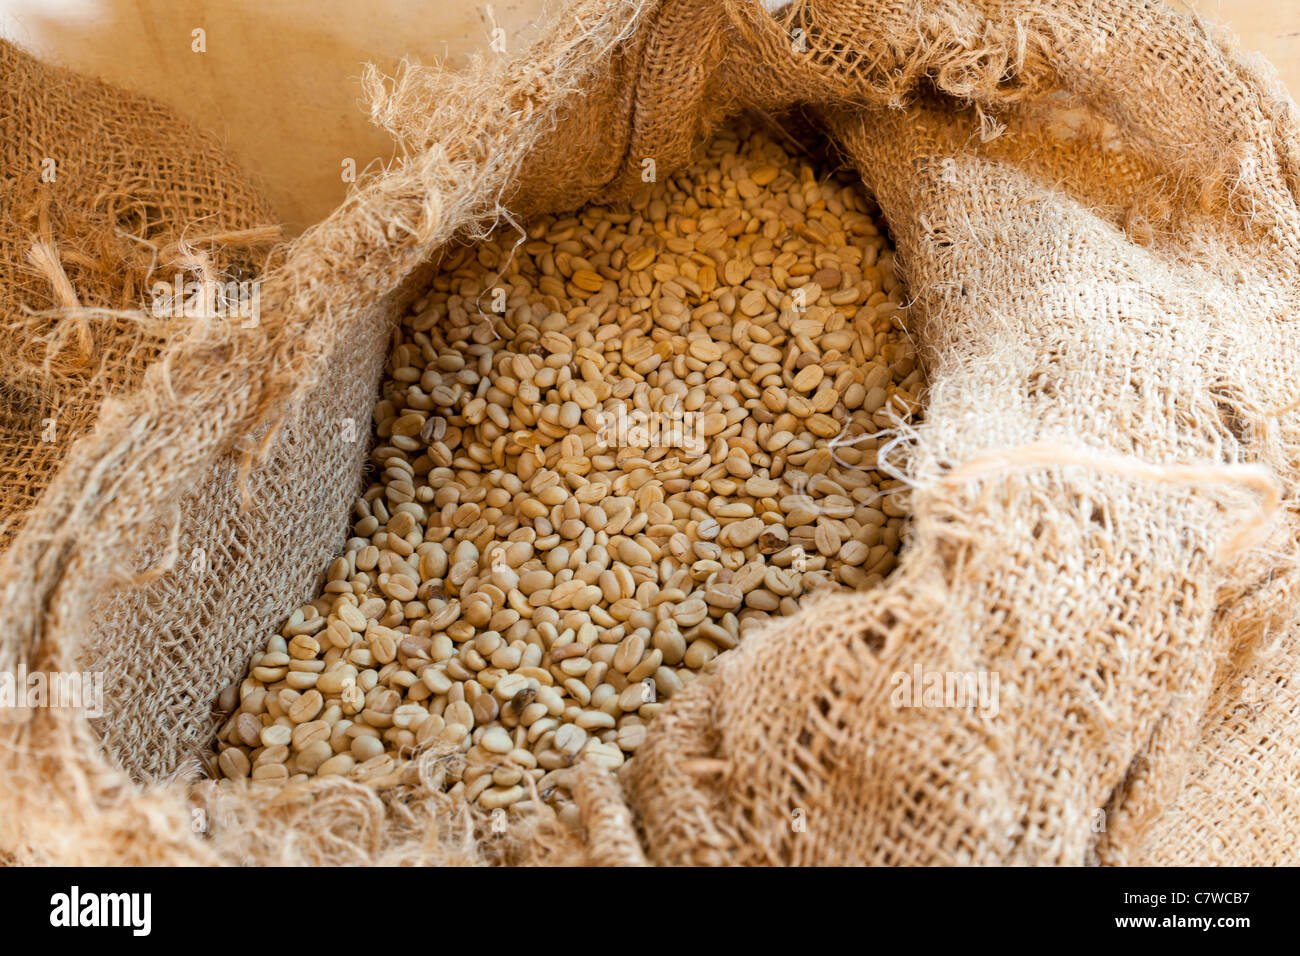 Unroasted coffee beans in a sack, - Stock Image